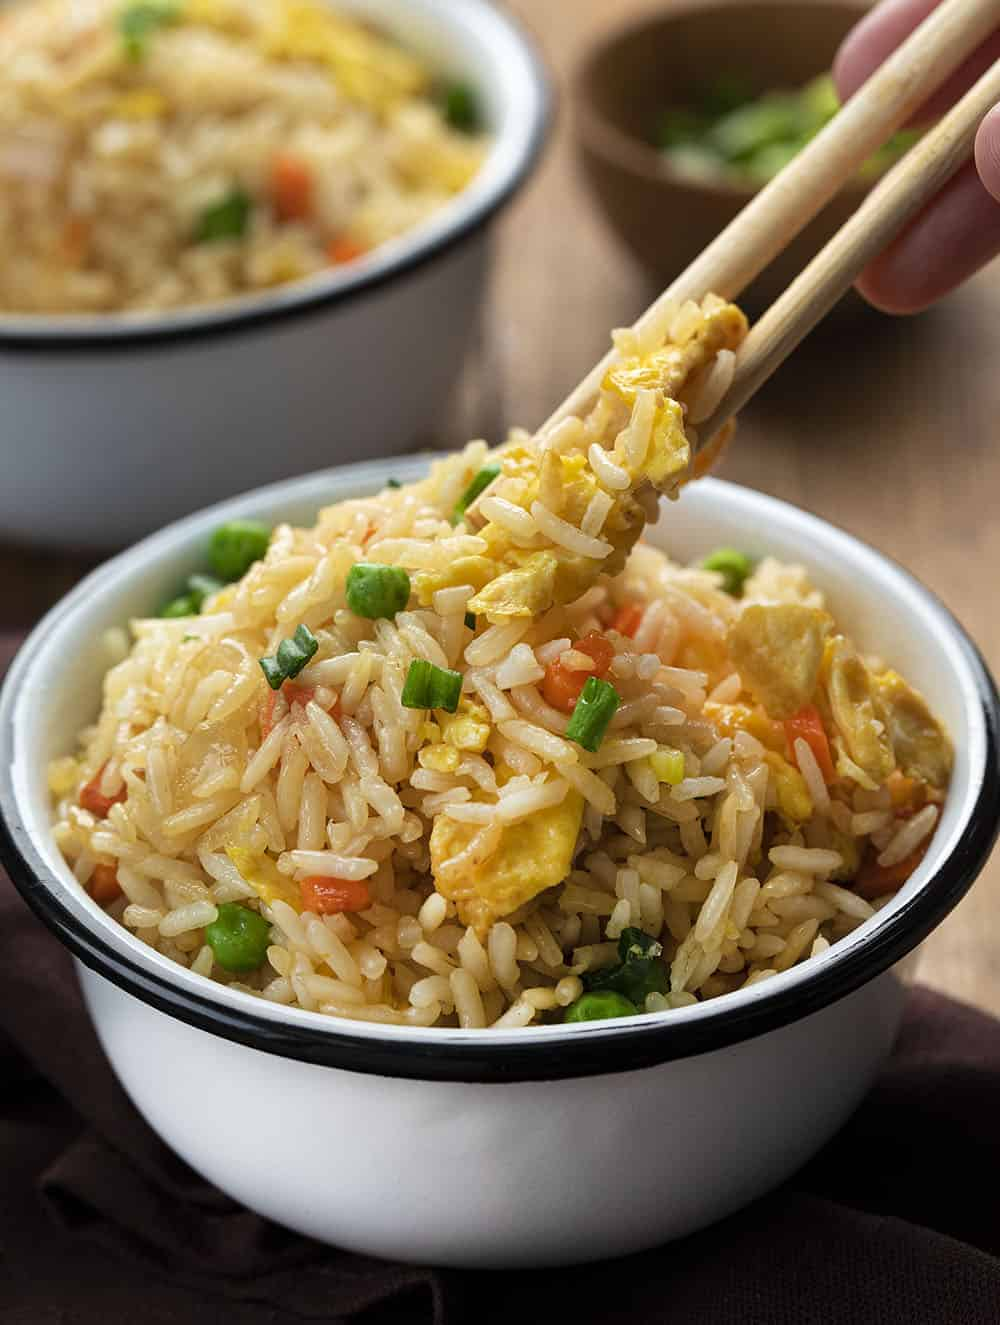 Picking up Fried Rice with Chop Sticks